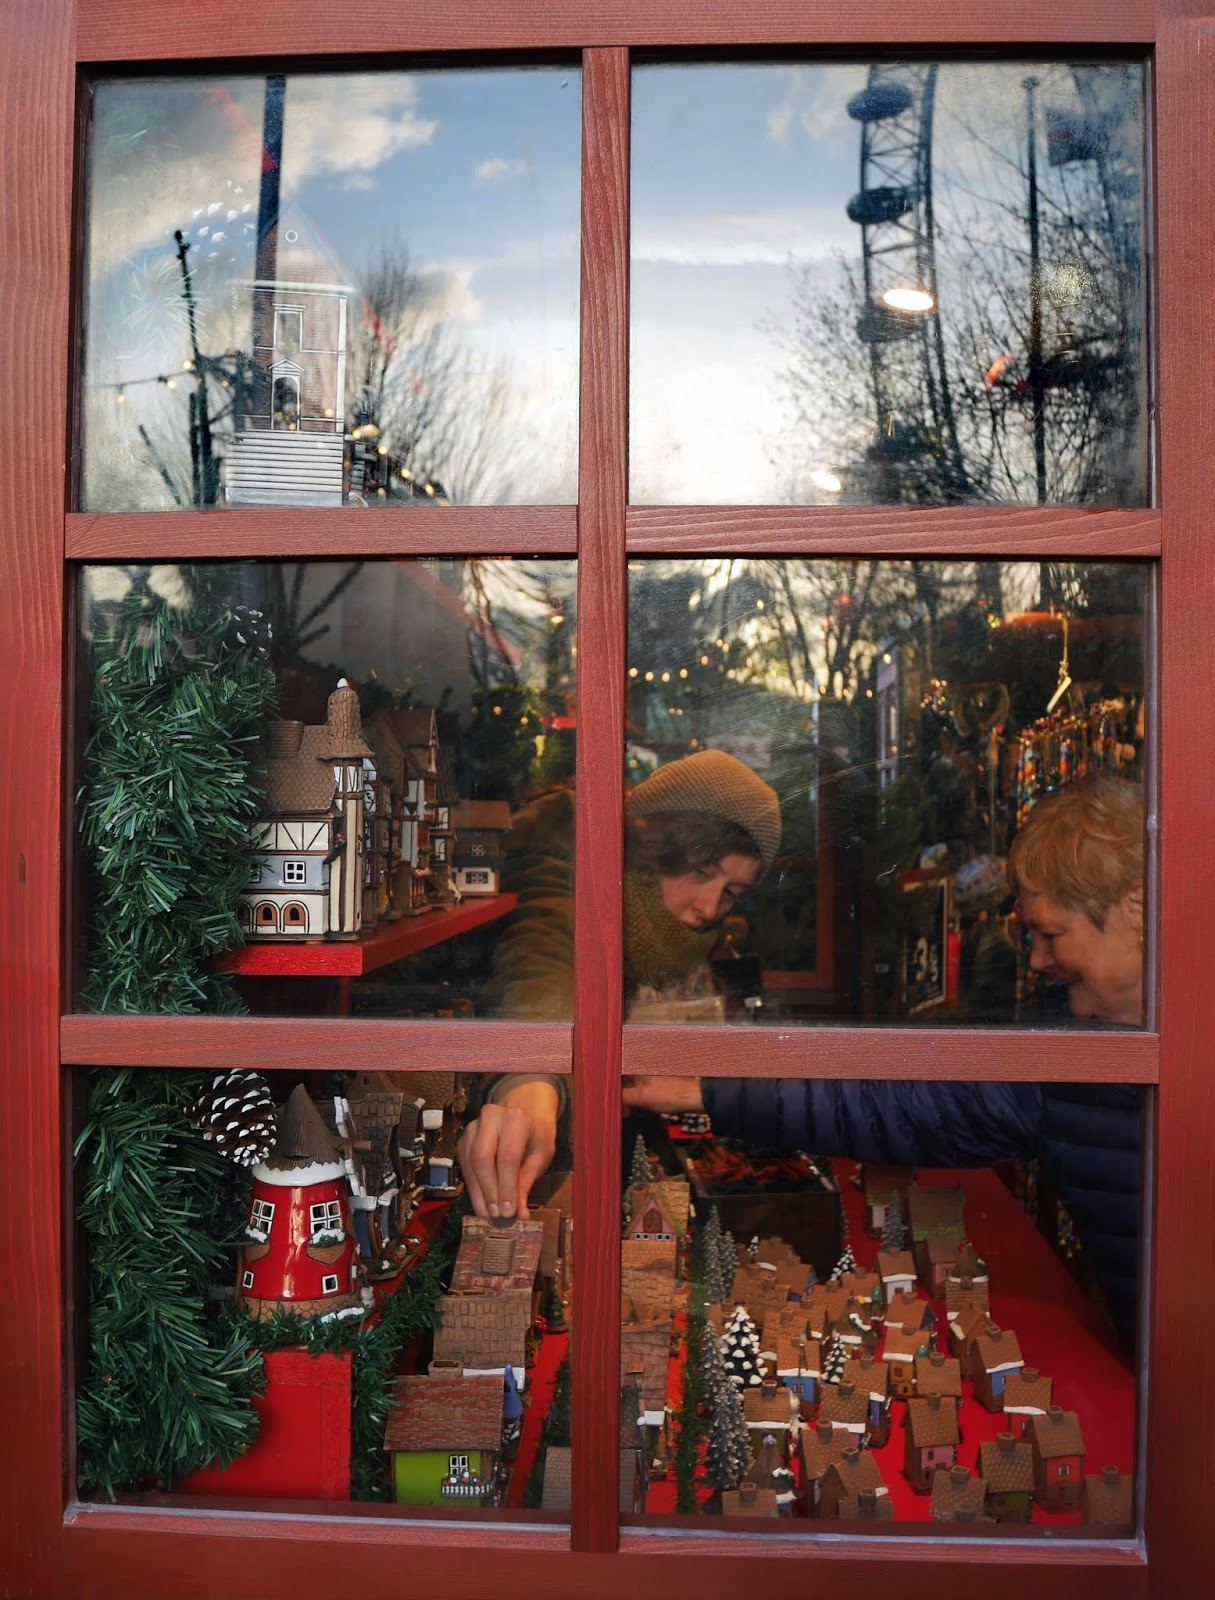 A market stall window at the Southbank Christmas Market in London